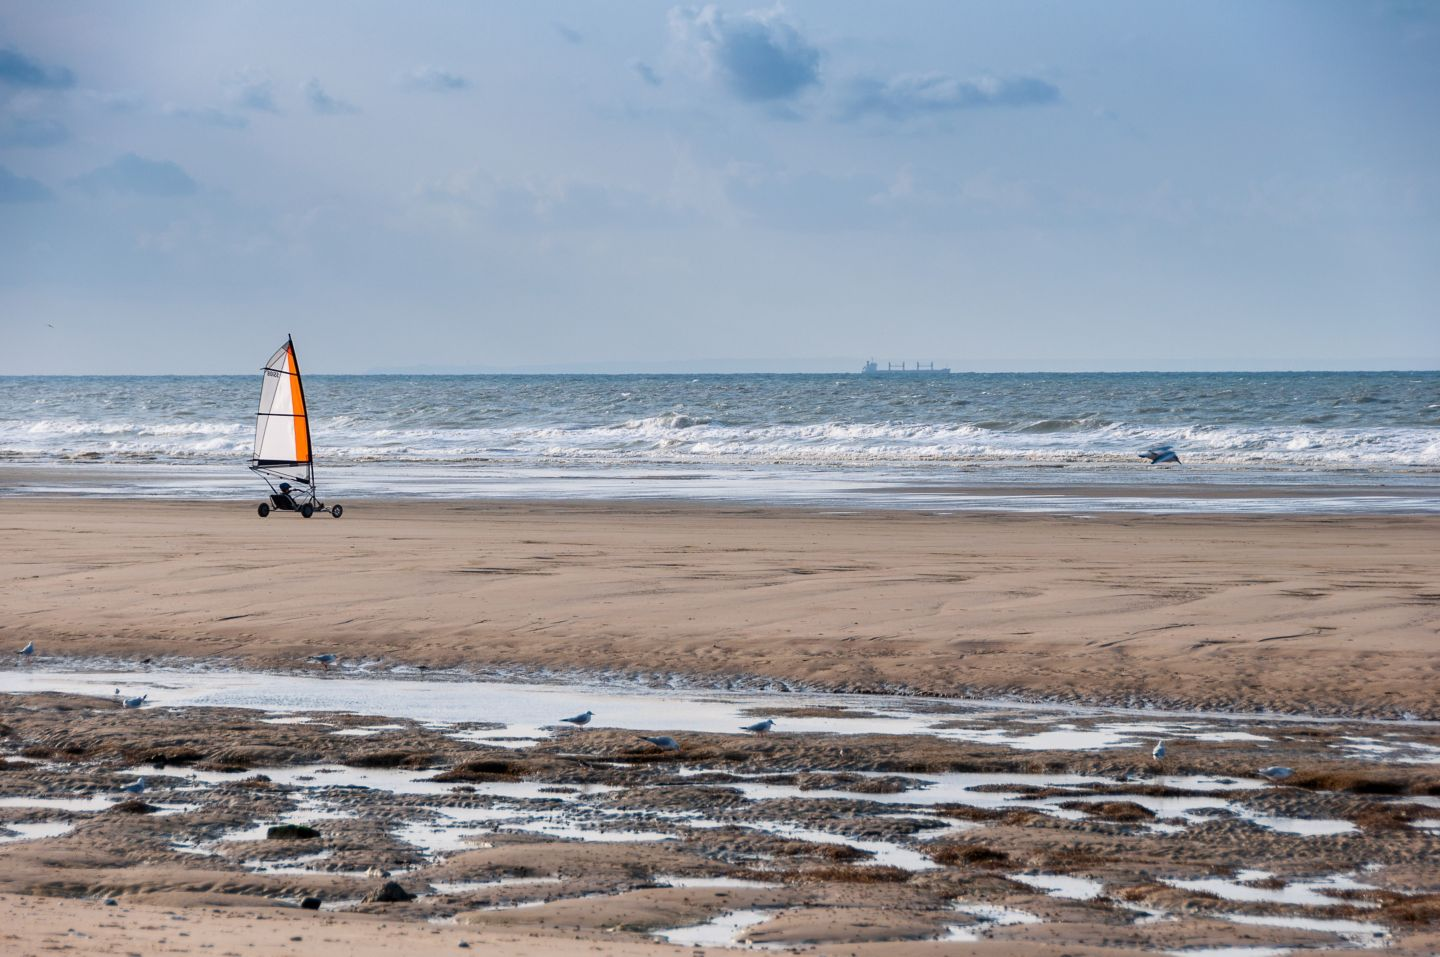 Land yachting on West Sands beach